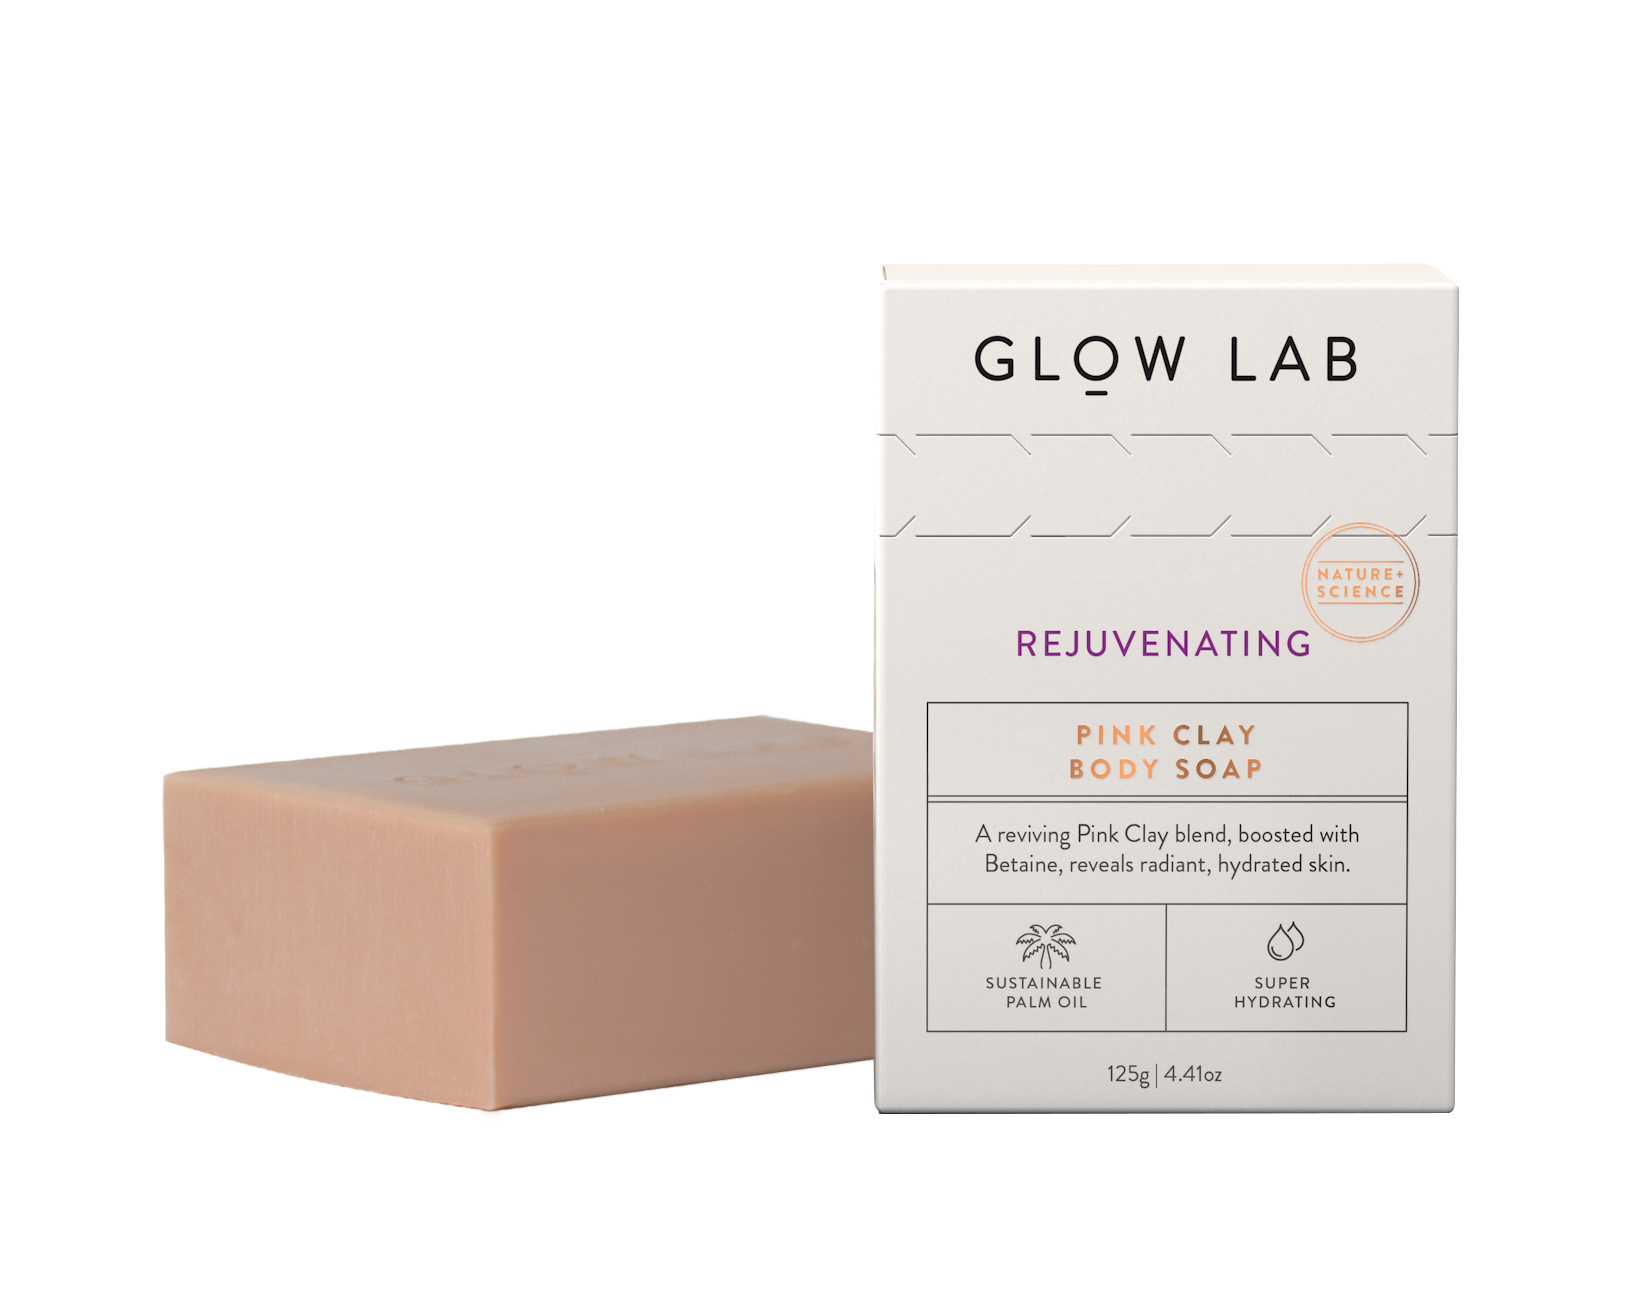 Pink Clay Body Soap